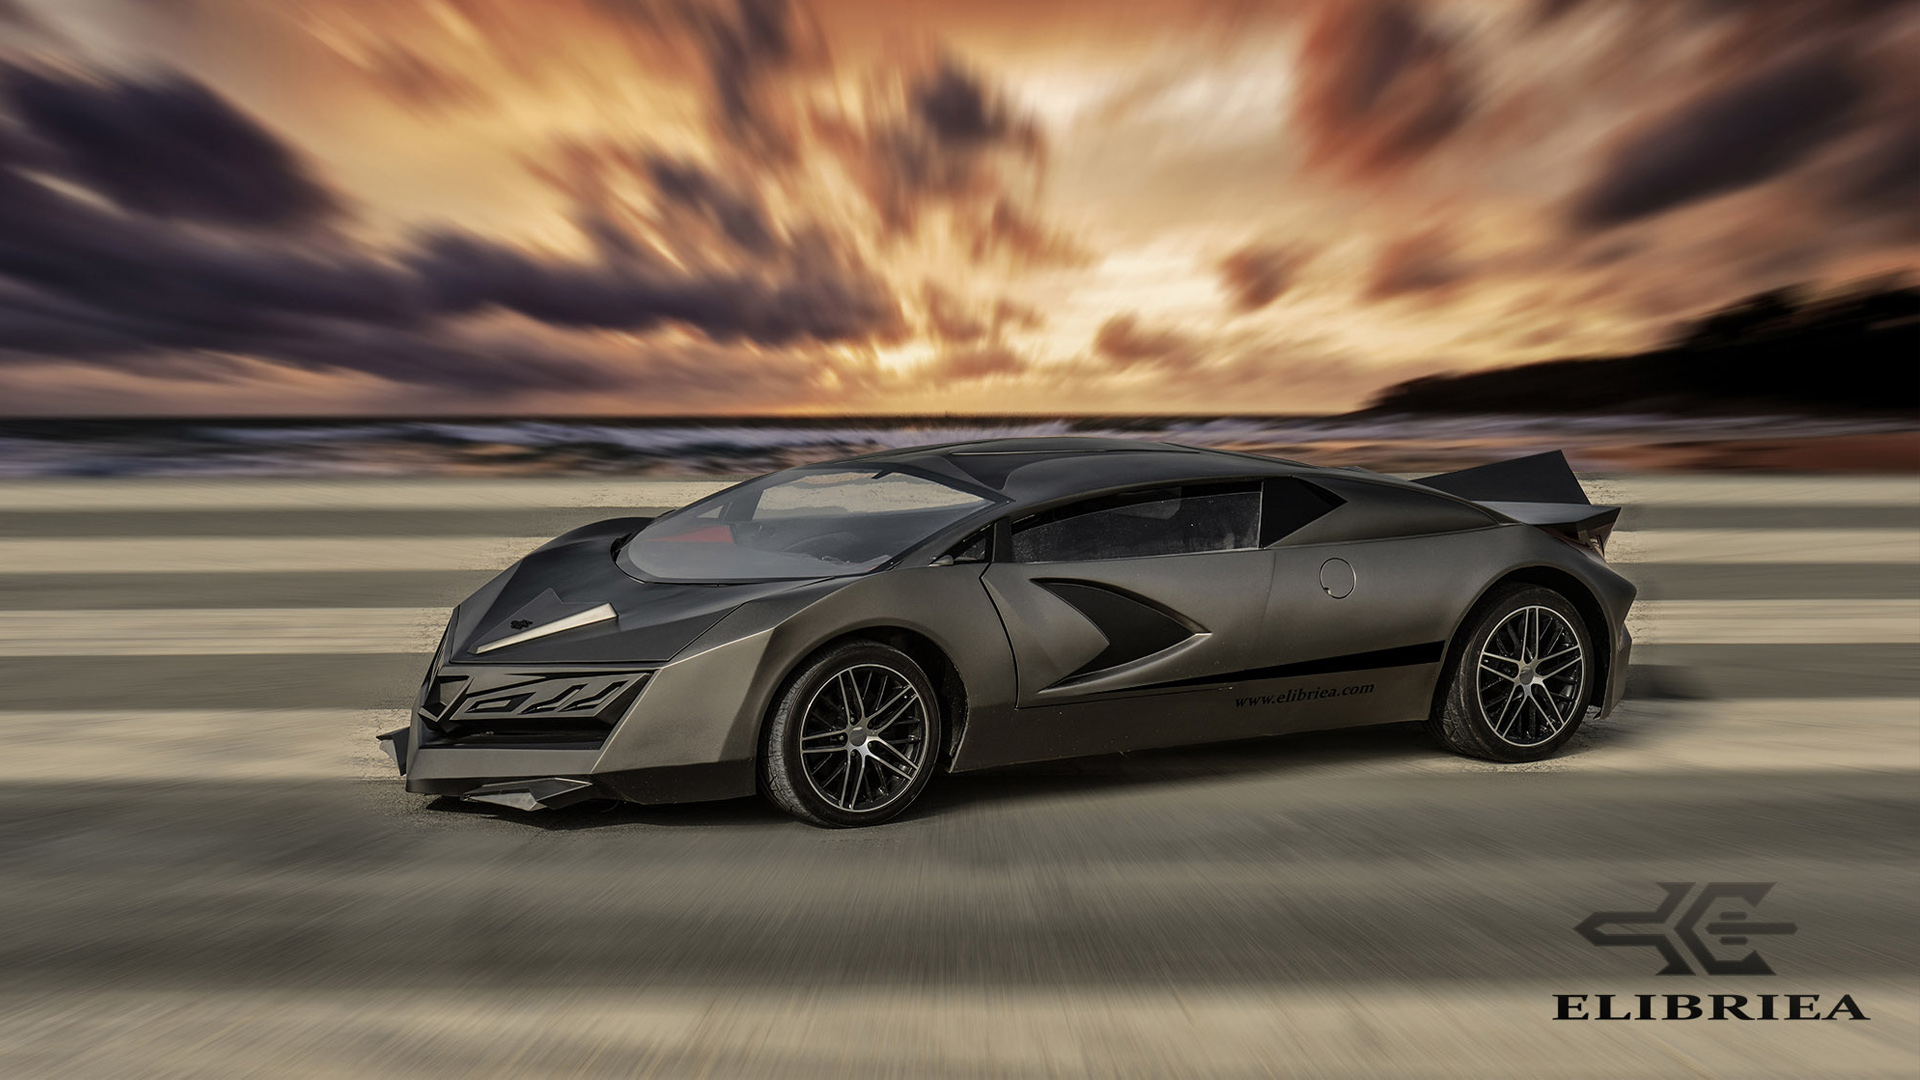 concept car hd wallpaper - photo #10